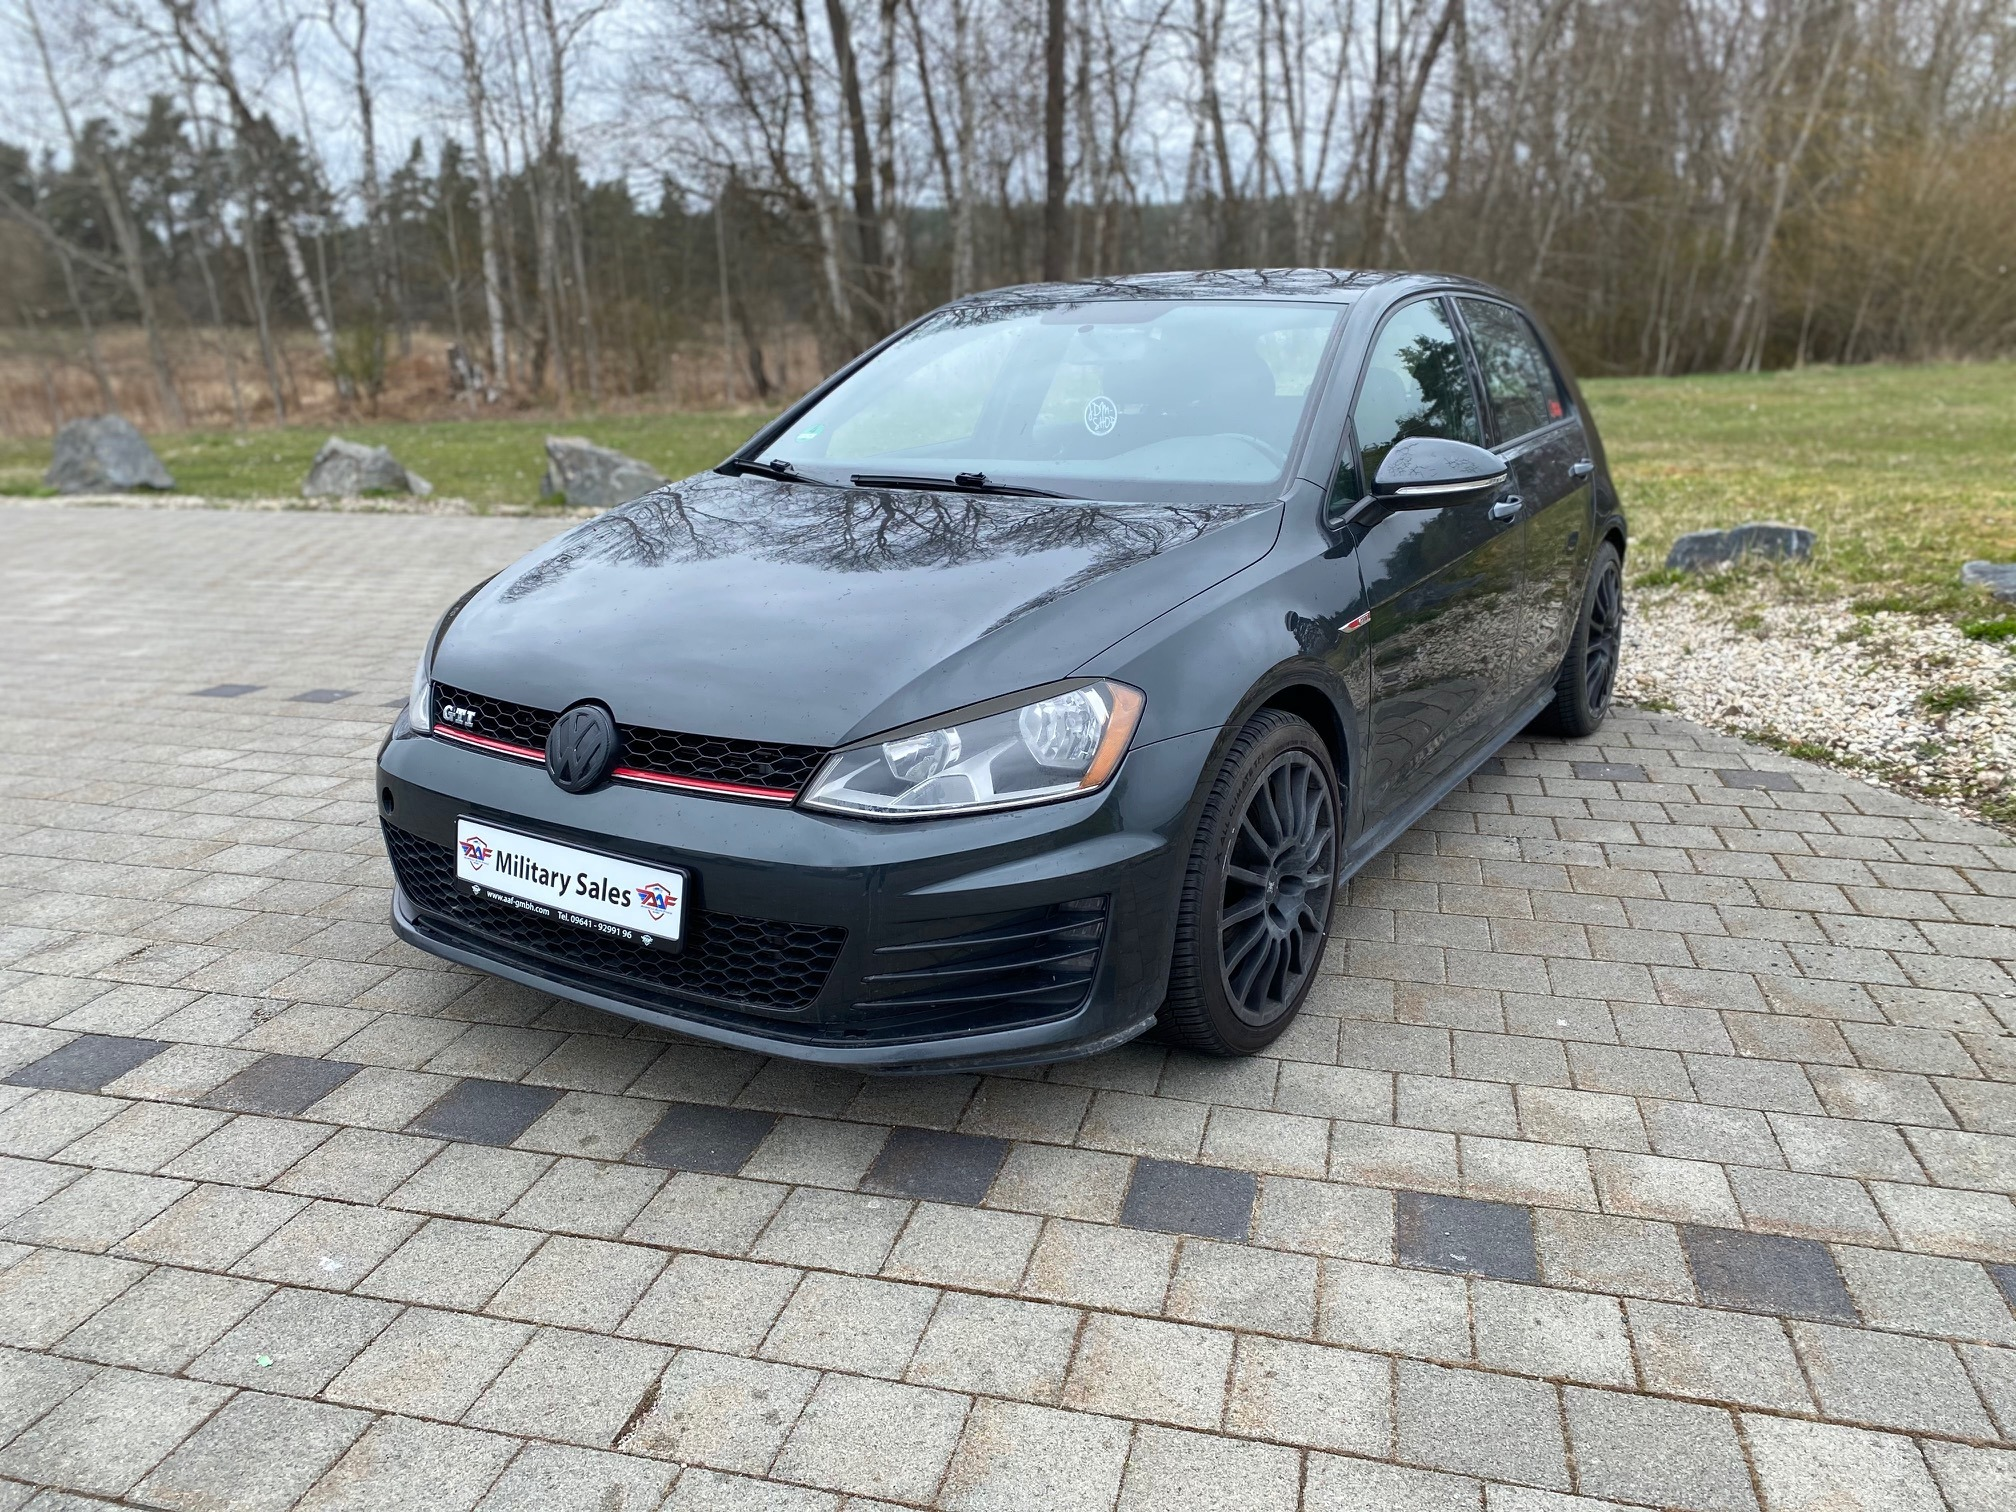 2016 Volkswagen Golf GTI S</br>as low as </br>$139 per paycheck